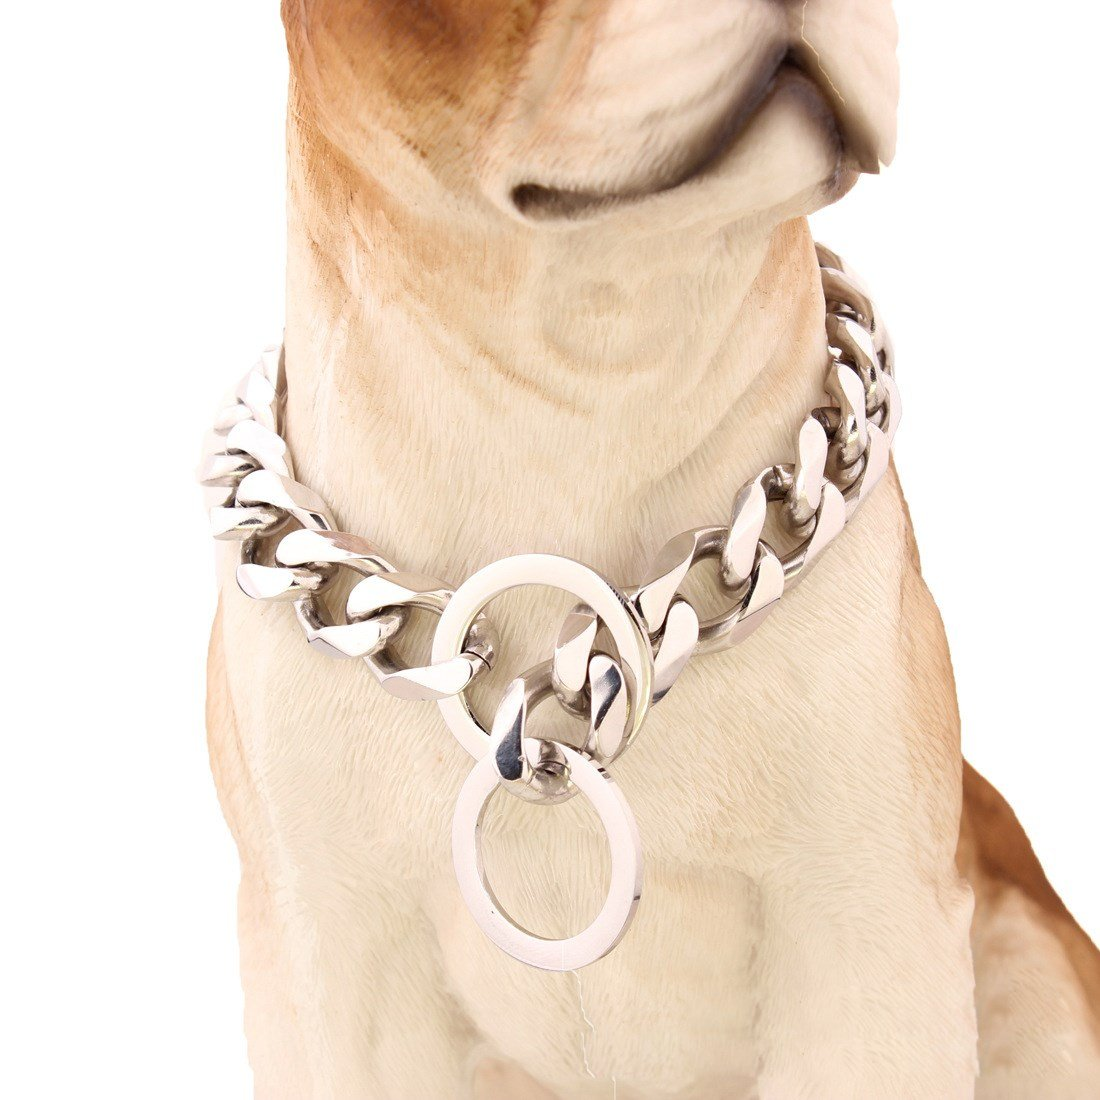 16 inch Pet Online Dog collar mirror polished stainless steel p chain titanium steel chain necklace pet dog training leash Tow Collar 19mm,16